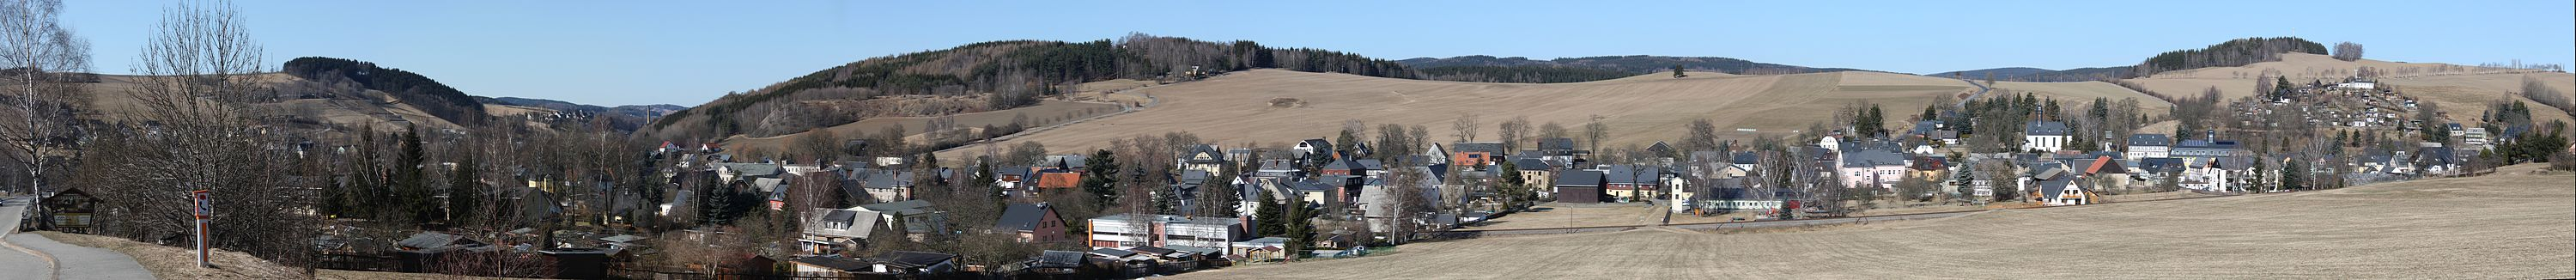 Raschau Panorama 2011.jpg